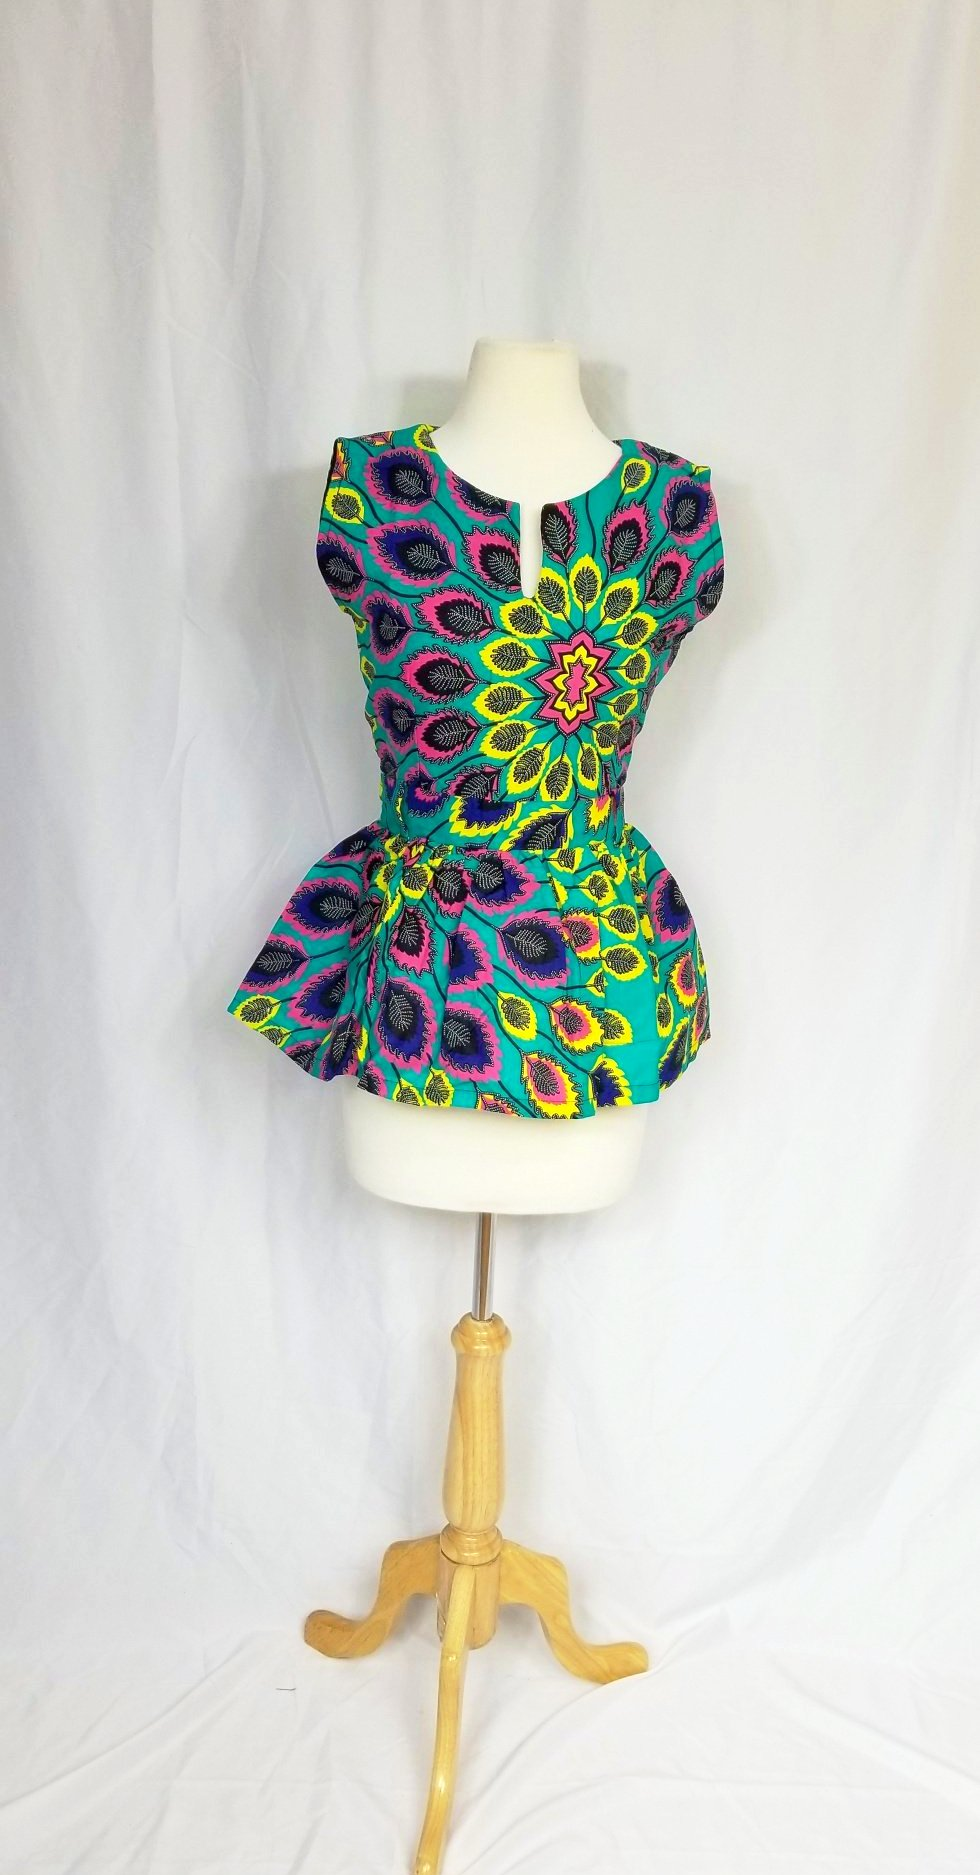 Peplum top (Torquoise peacock design)